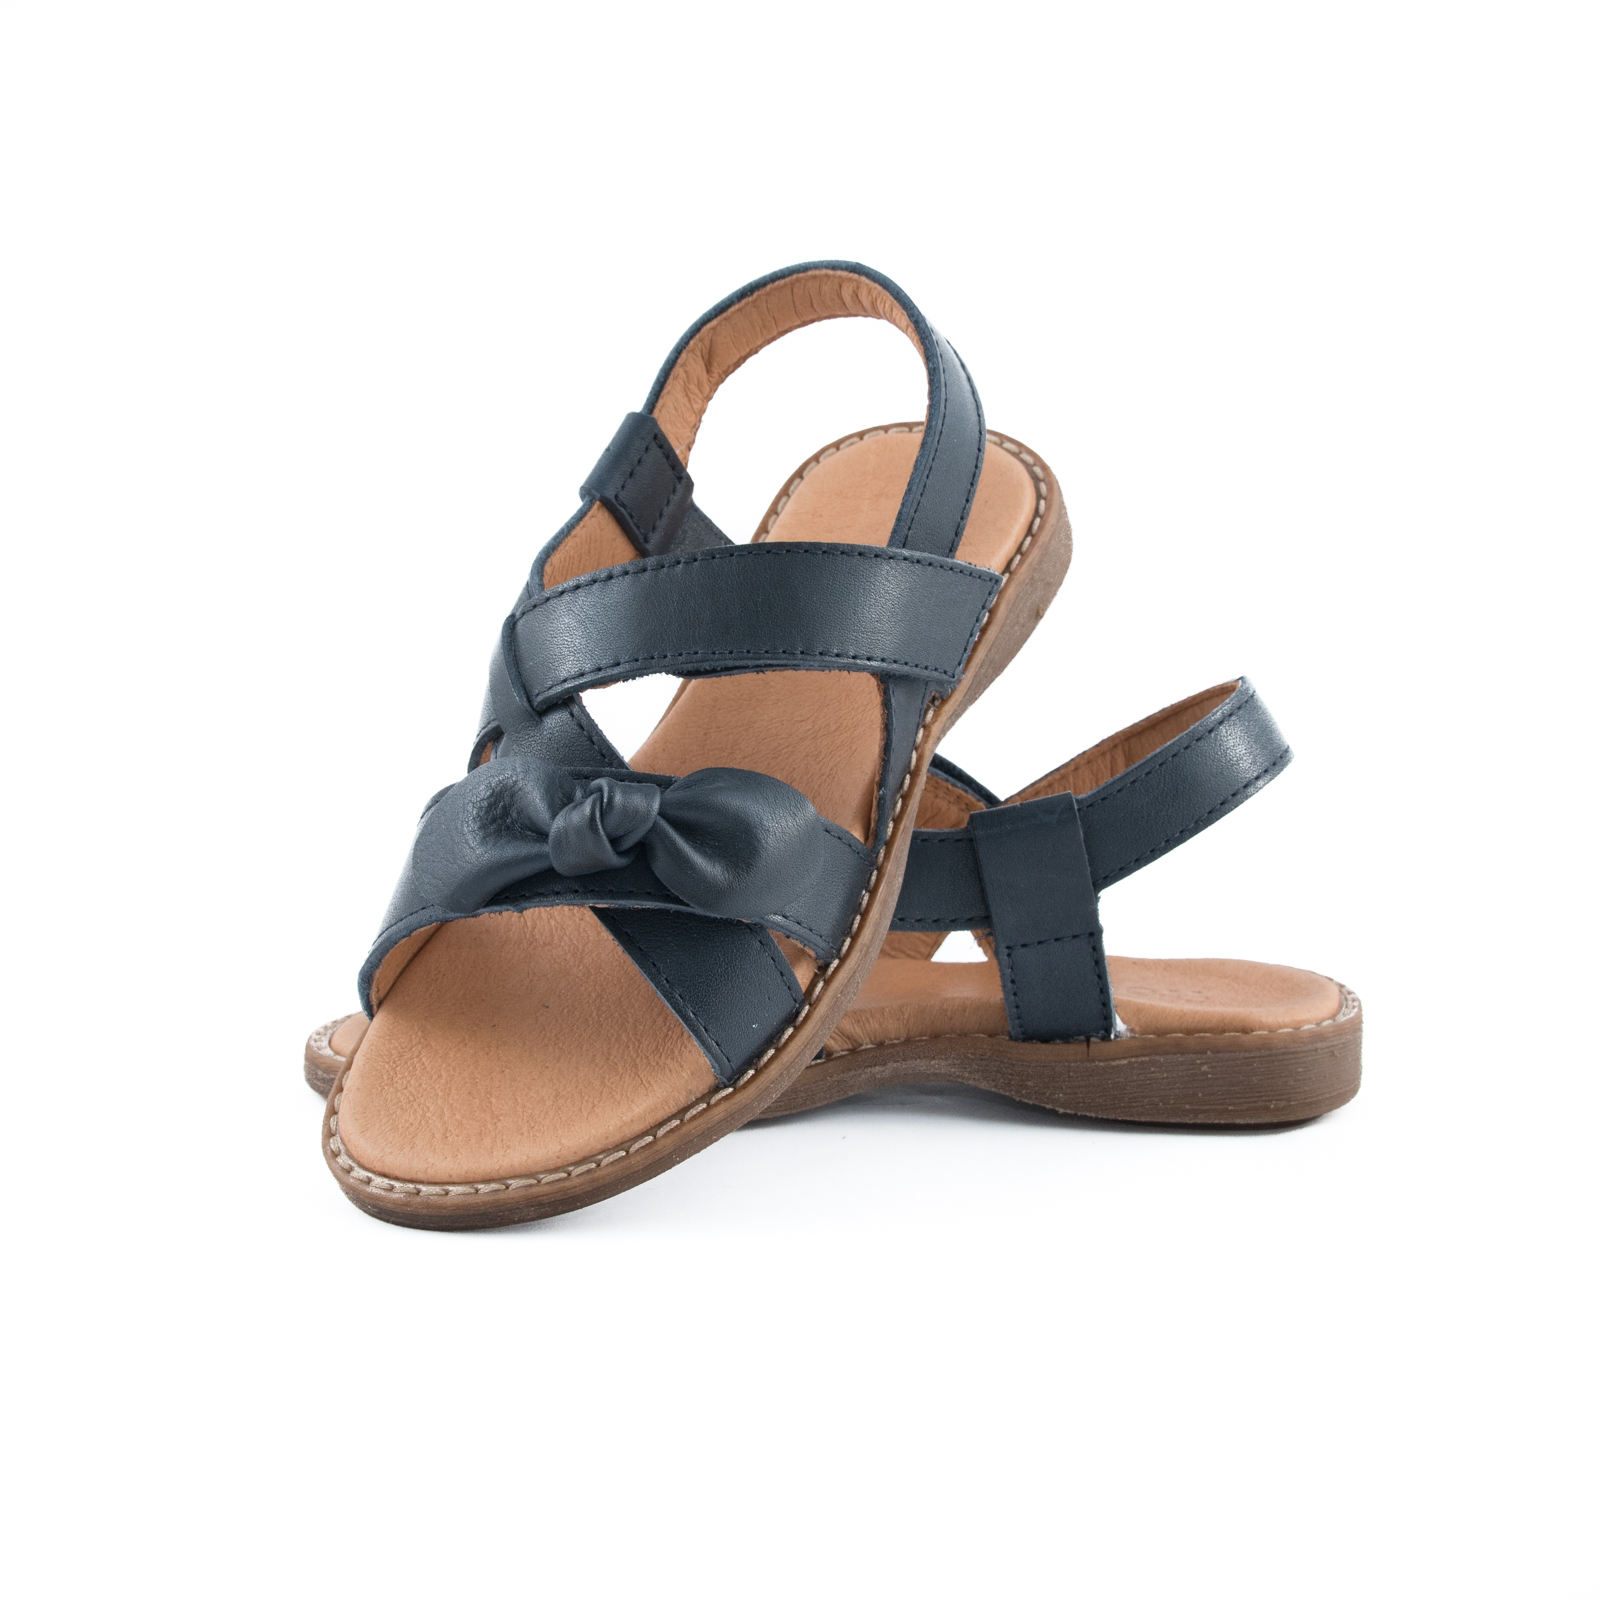 FRODDO Girls Sandals Navy G3150133-5 NOW £35